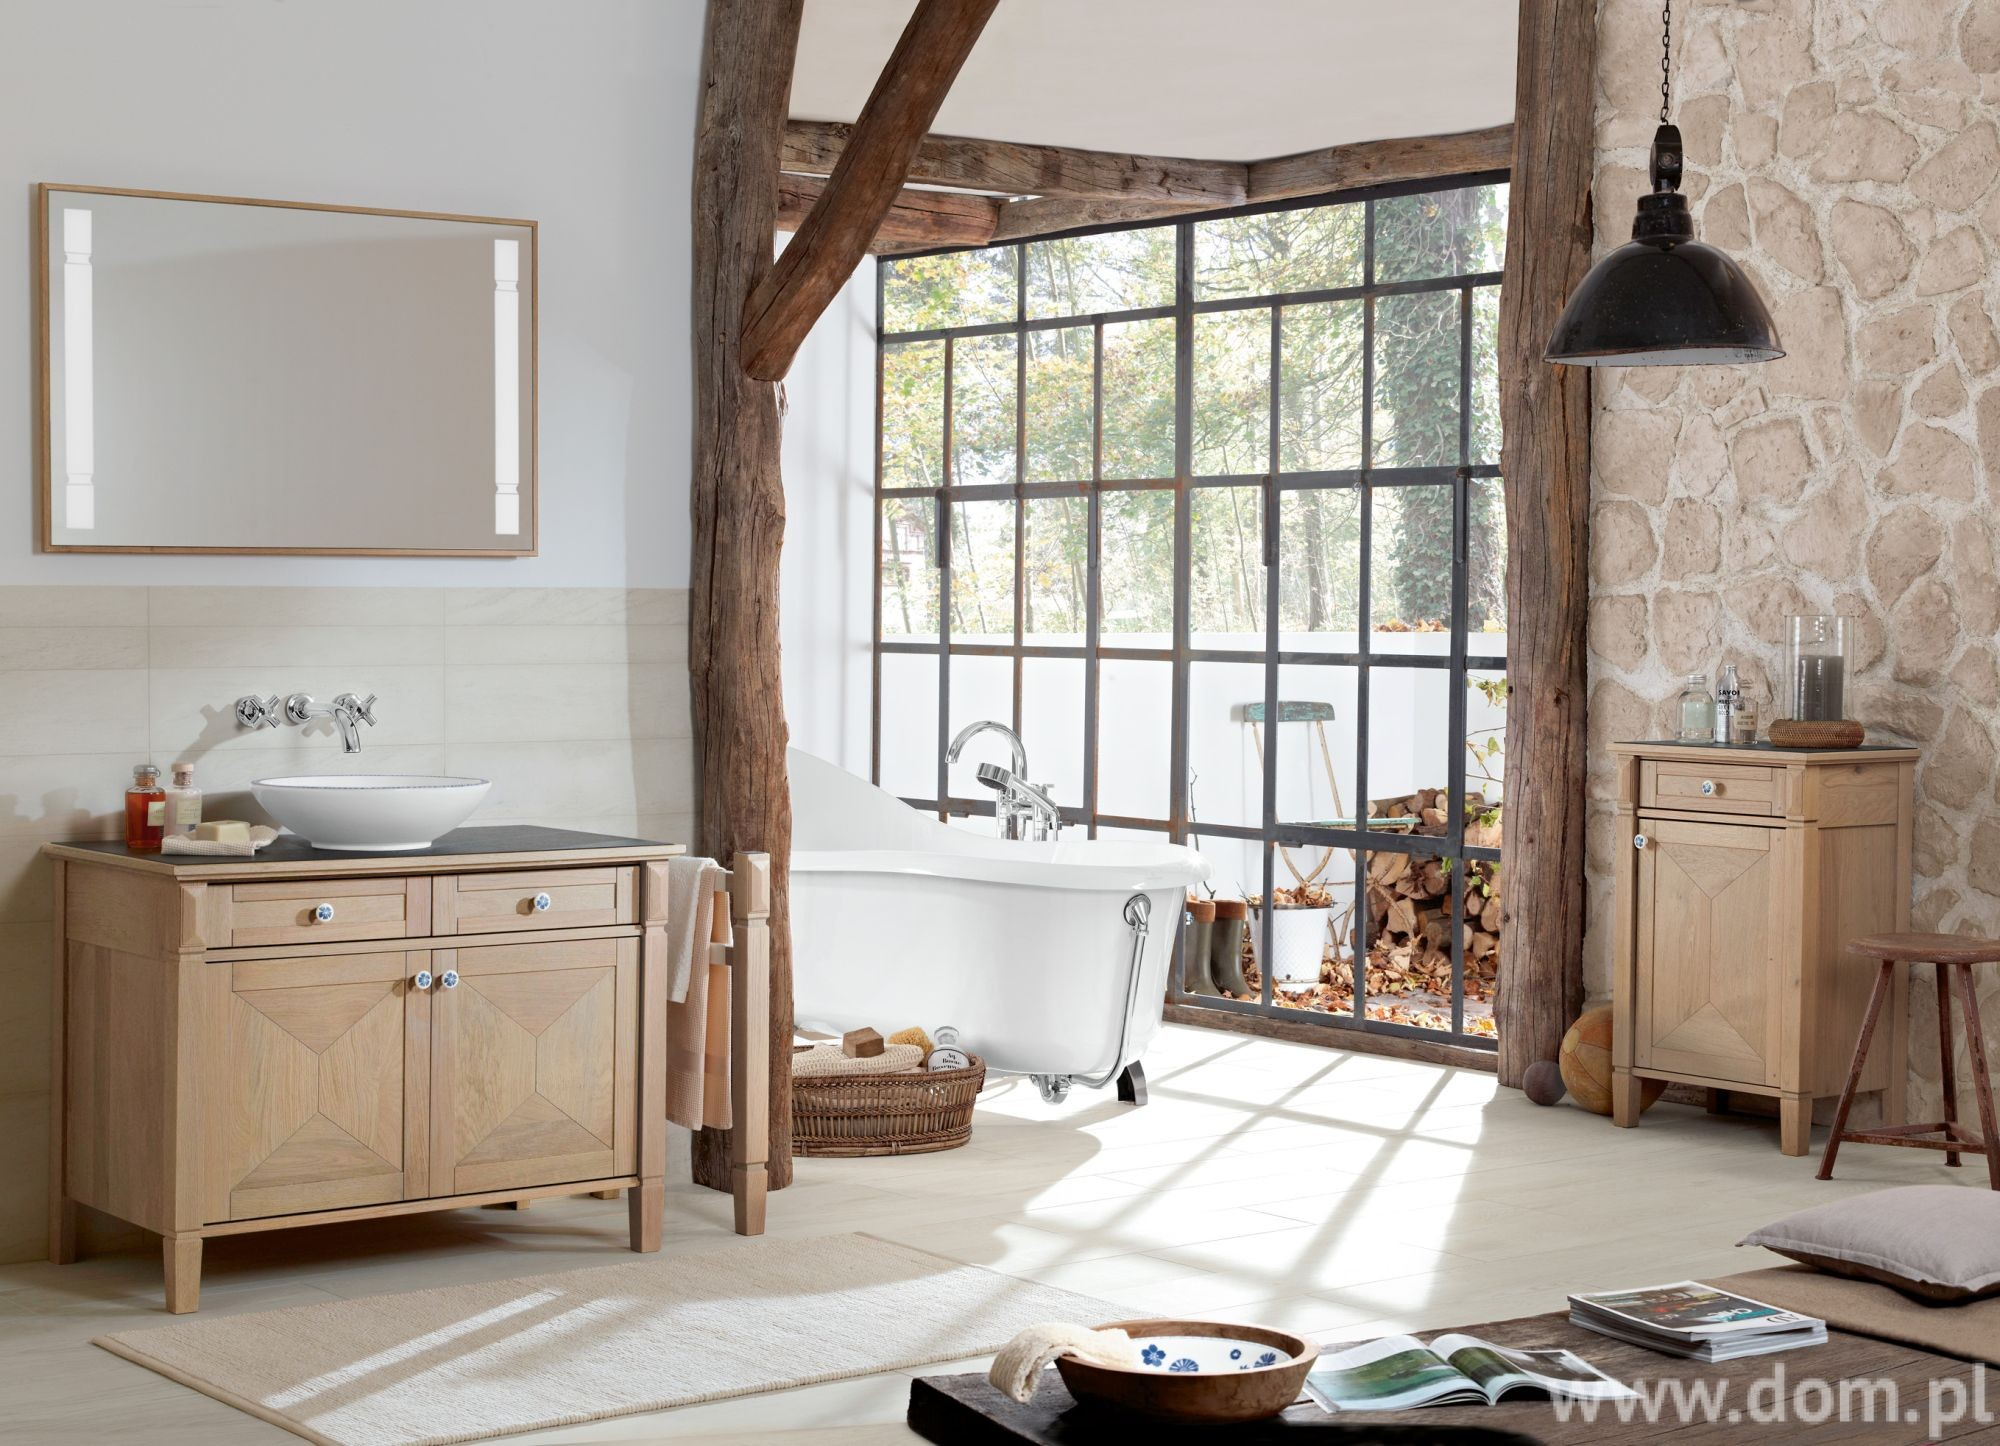 vintage boho bathroom design html with Jak Dobrac Kolor Fugi on Arredare Il Bagno In Stile Etnico 11355 further Jak Dobrac Kolor Fugi together with Country Bath By Pam Britton 14x11 In p 2935 also 3626a6ace35a21c1 also Cozy Minimalist Living Room Reveal.